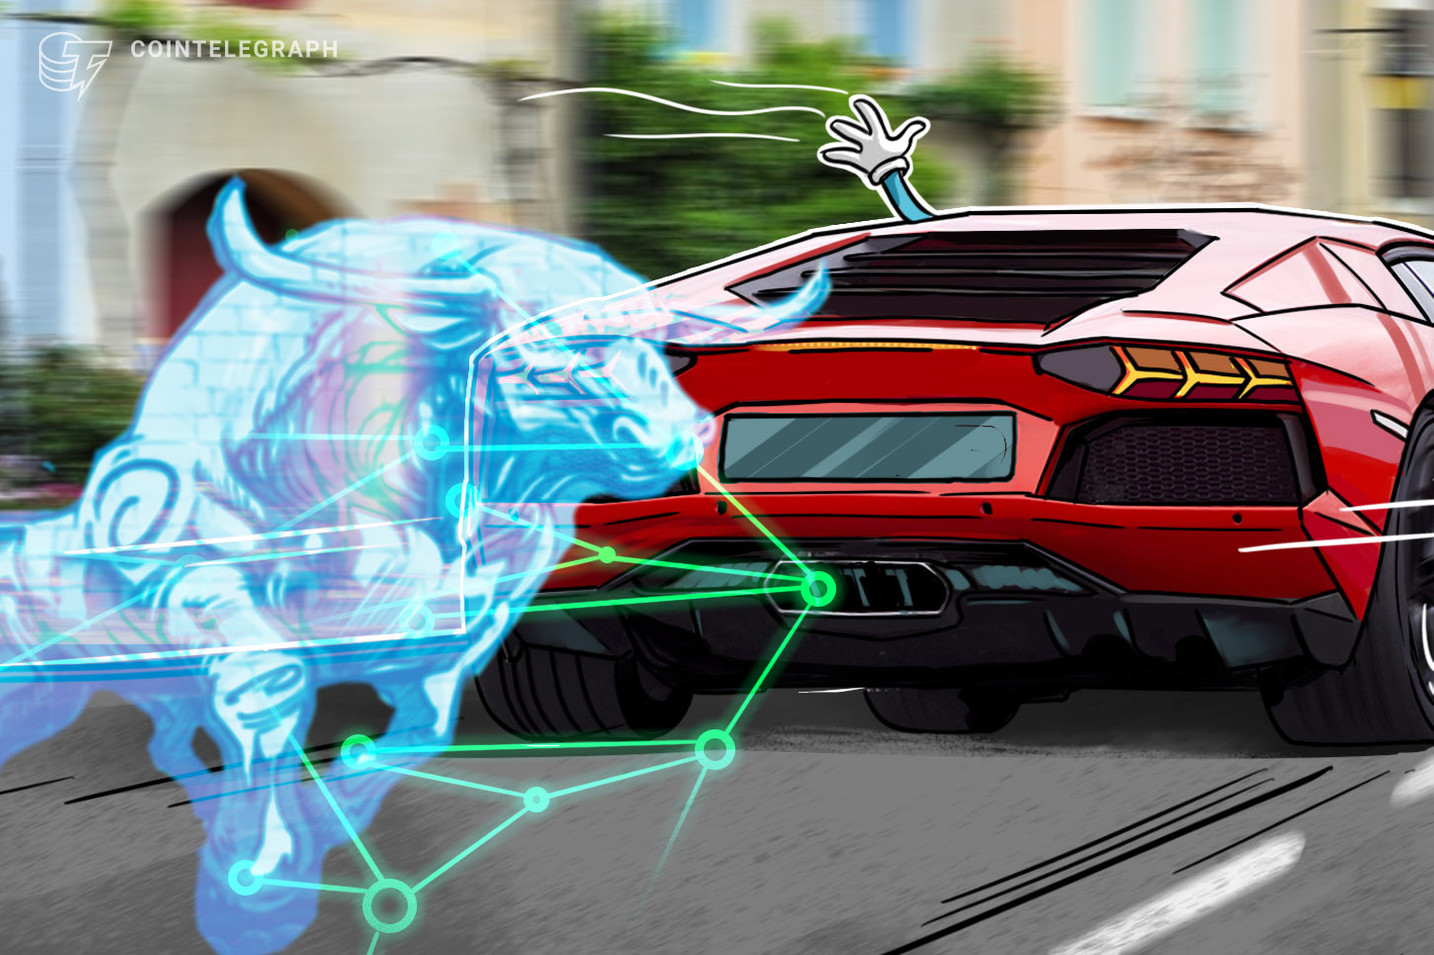 Salesforce Blockchain Certifies First Ever Artwork-Painted Lamborghini